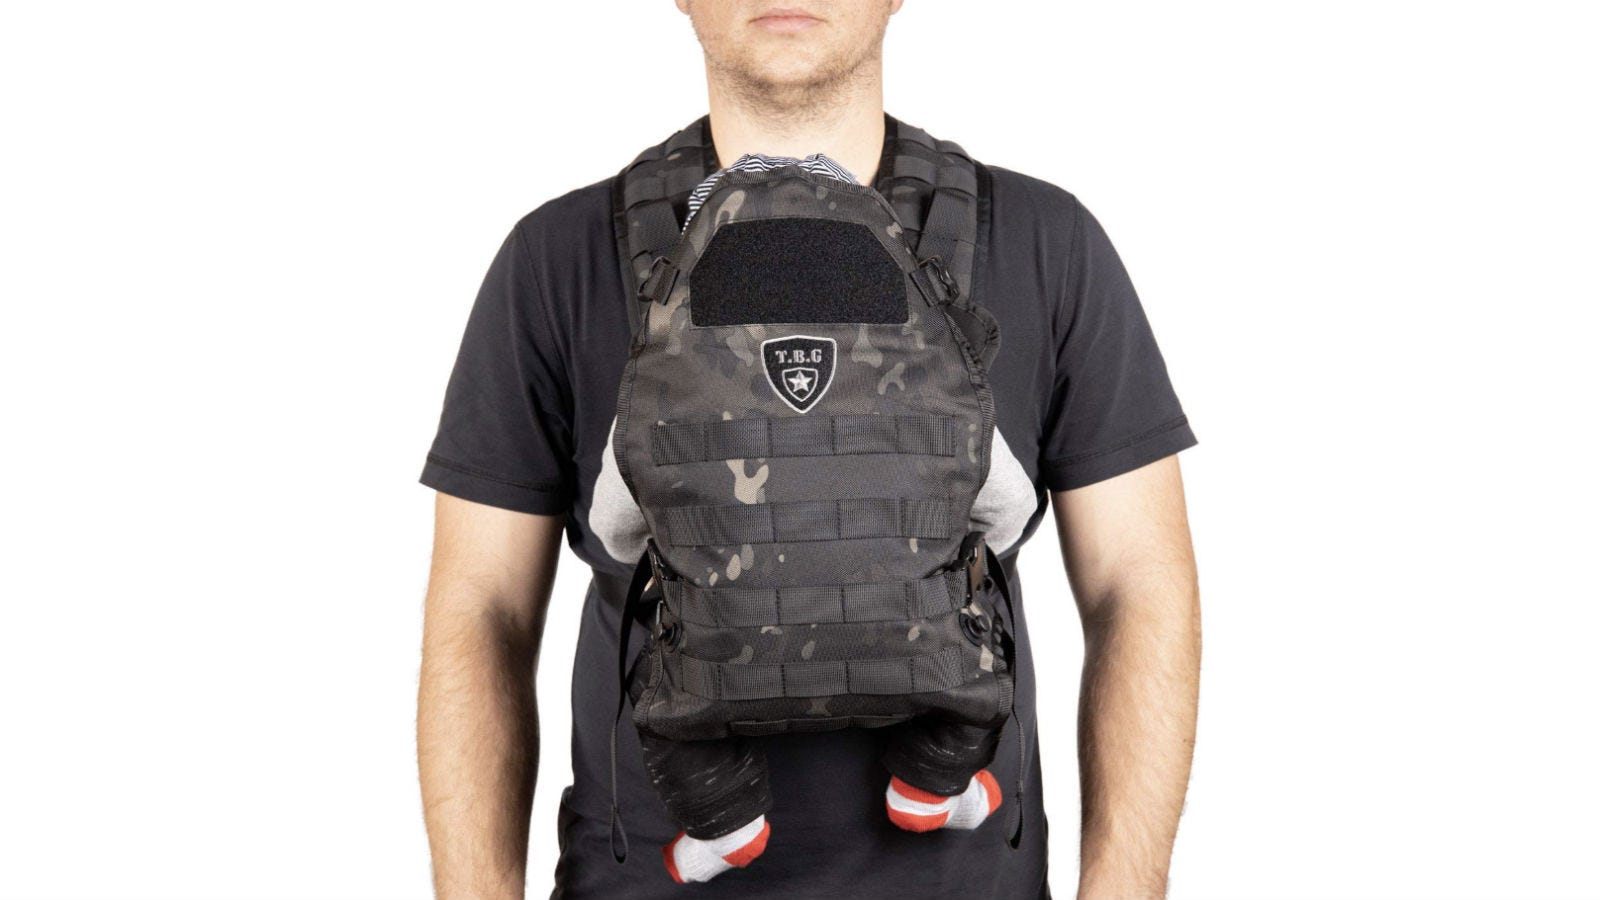 A man wearing the TBG Tactical Baby Carrier on his front, and a baby's socked feet dangling below it.